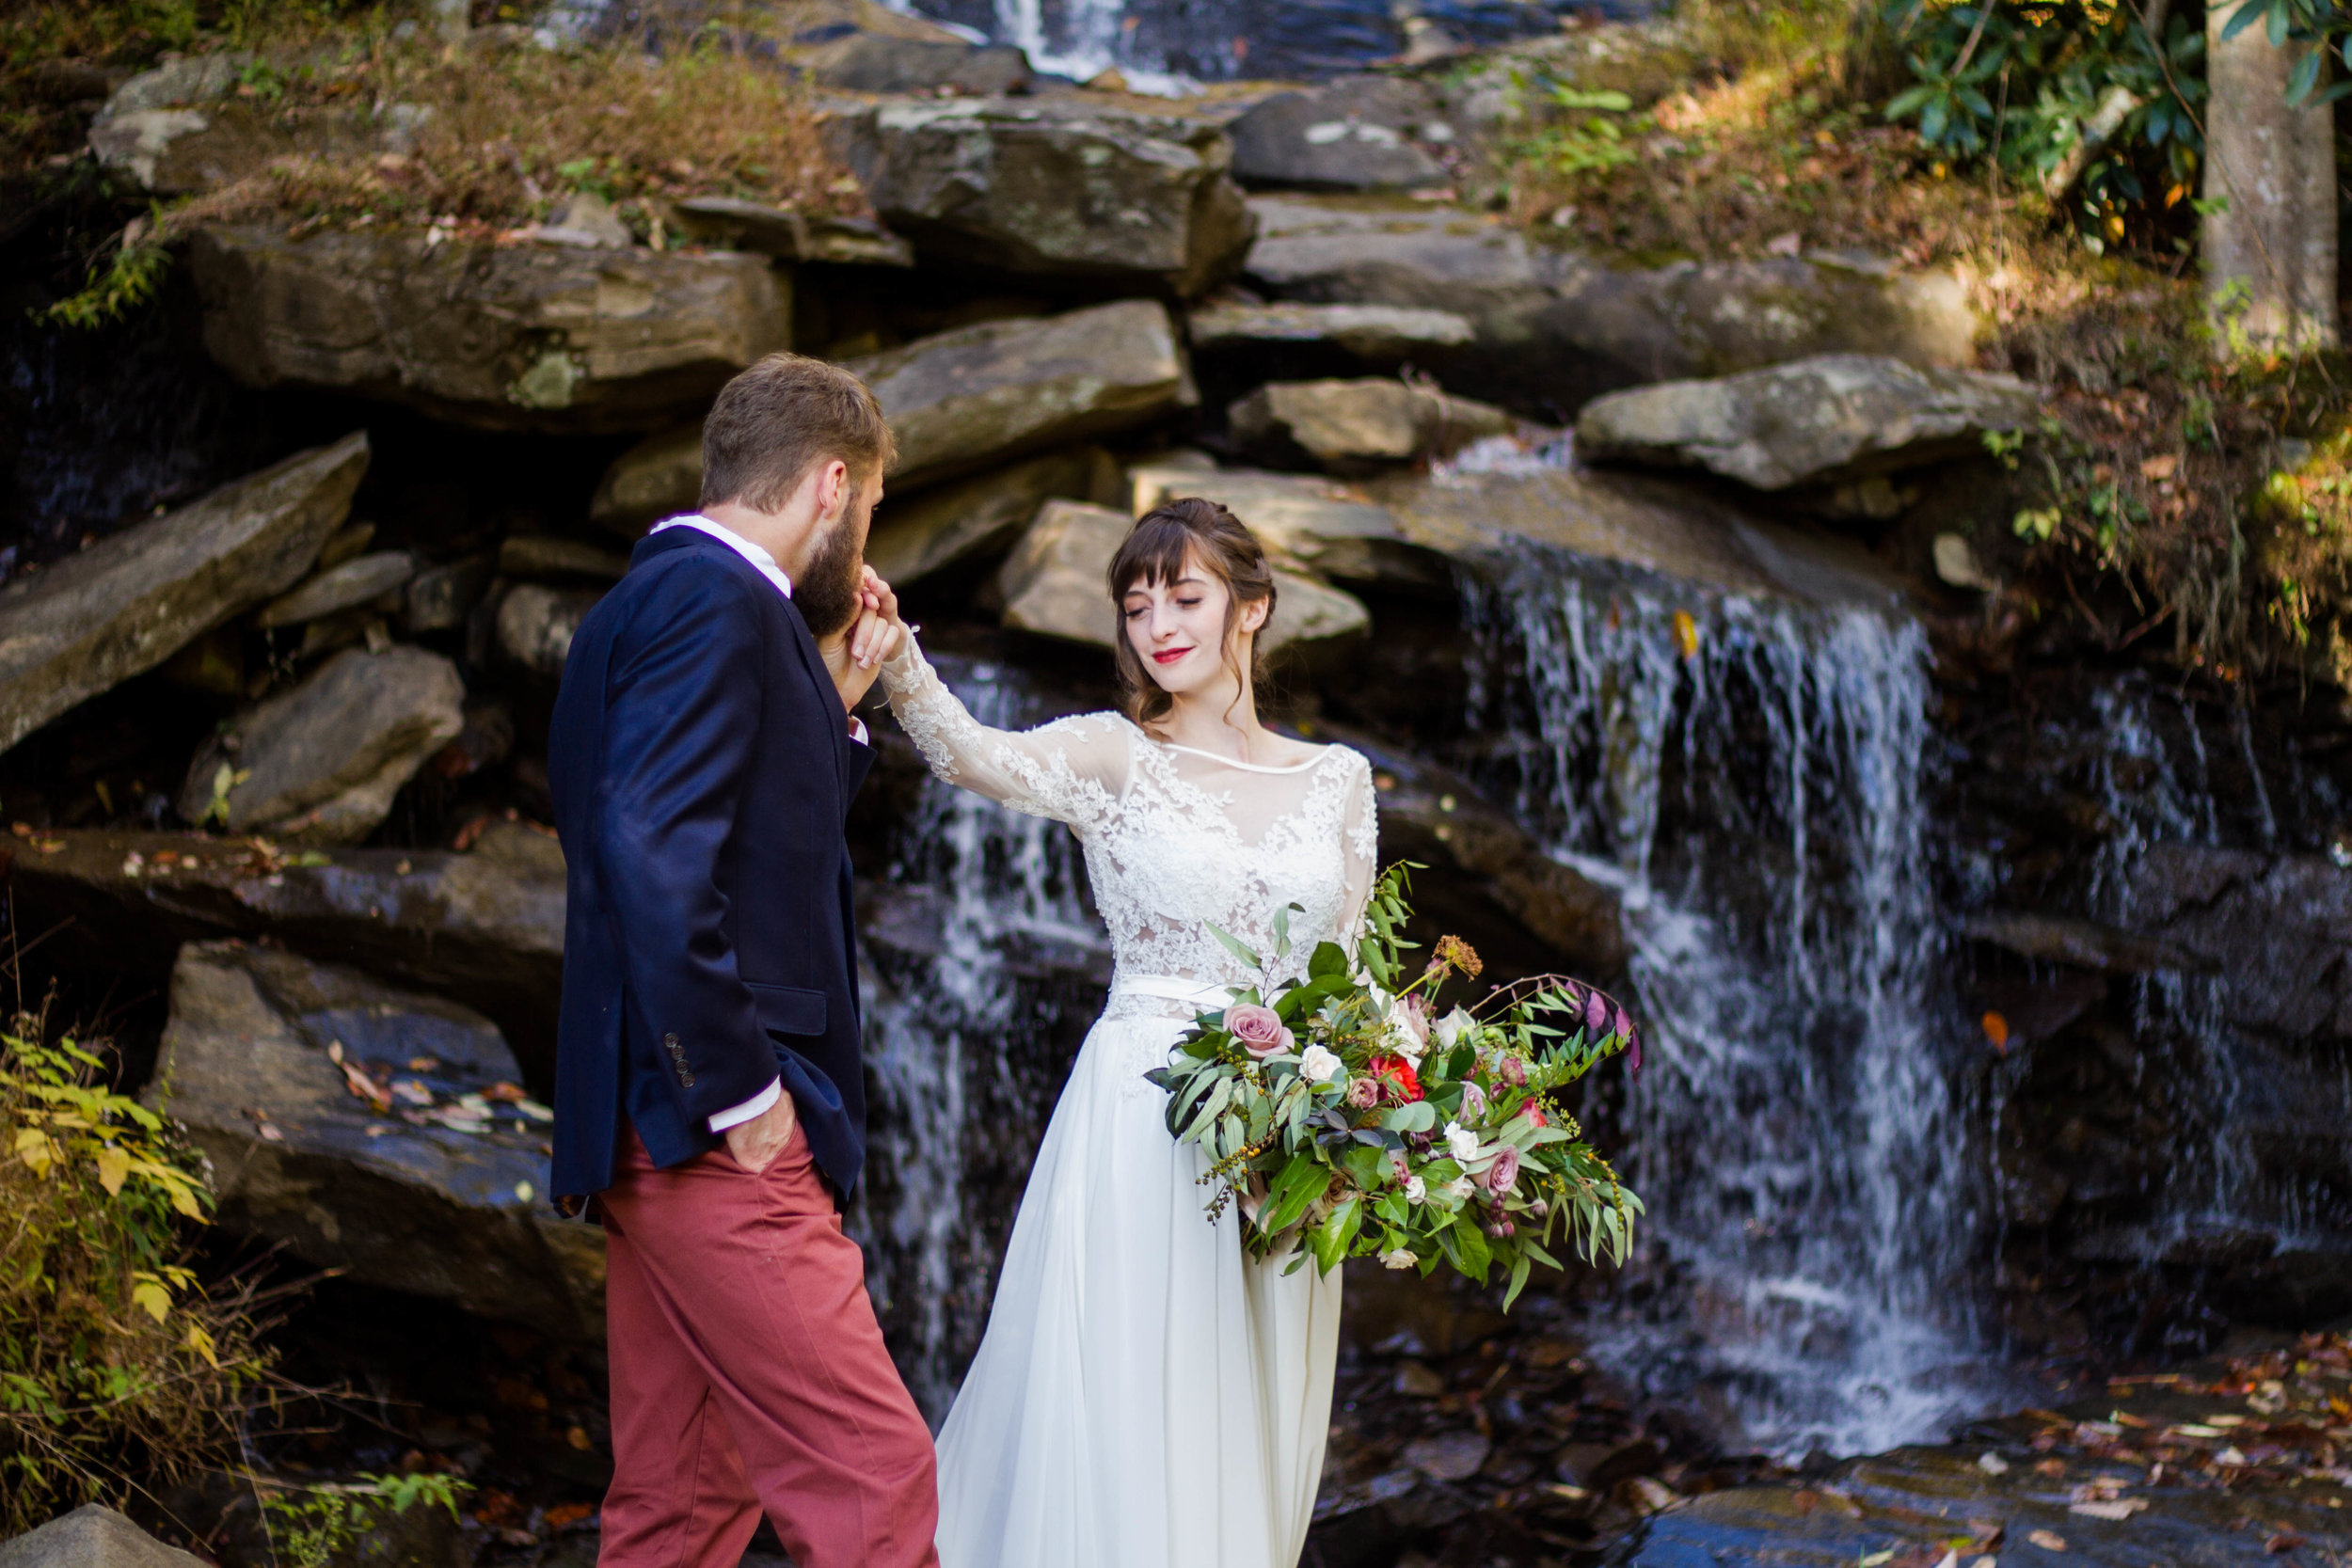 Capture every unforgettable moment - Jaw-dropping wedding videography and photography